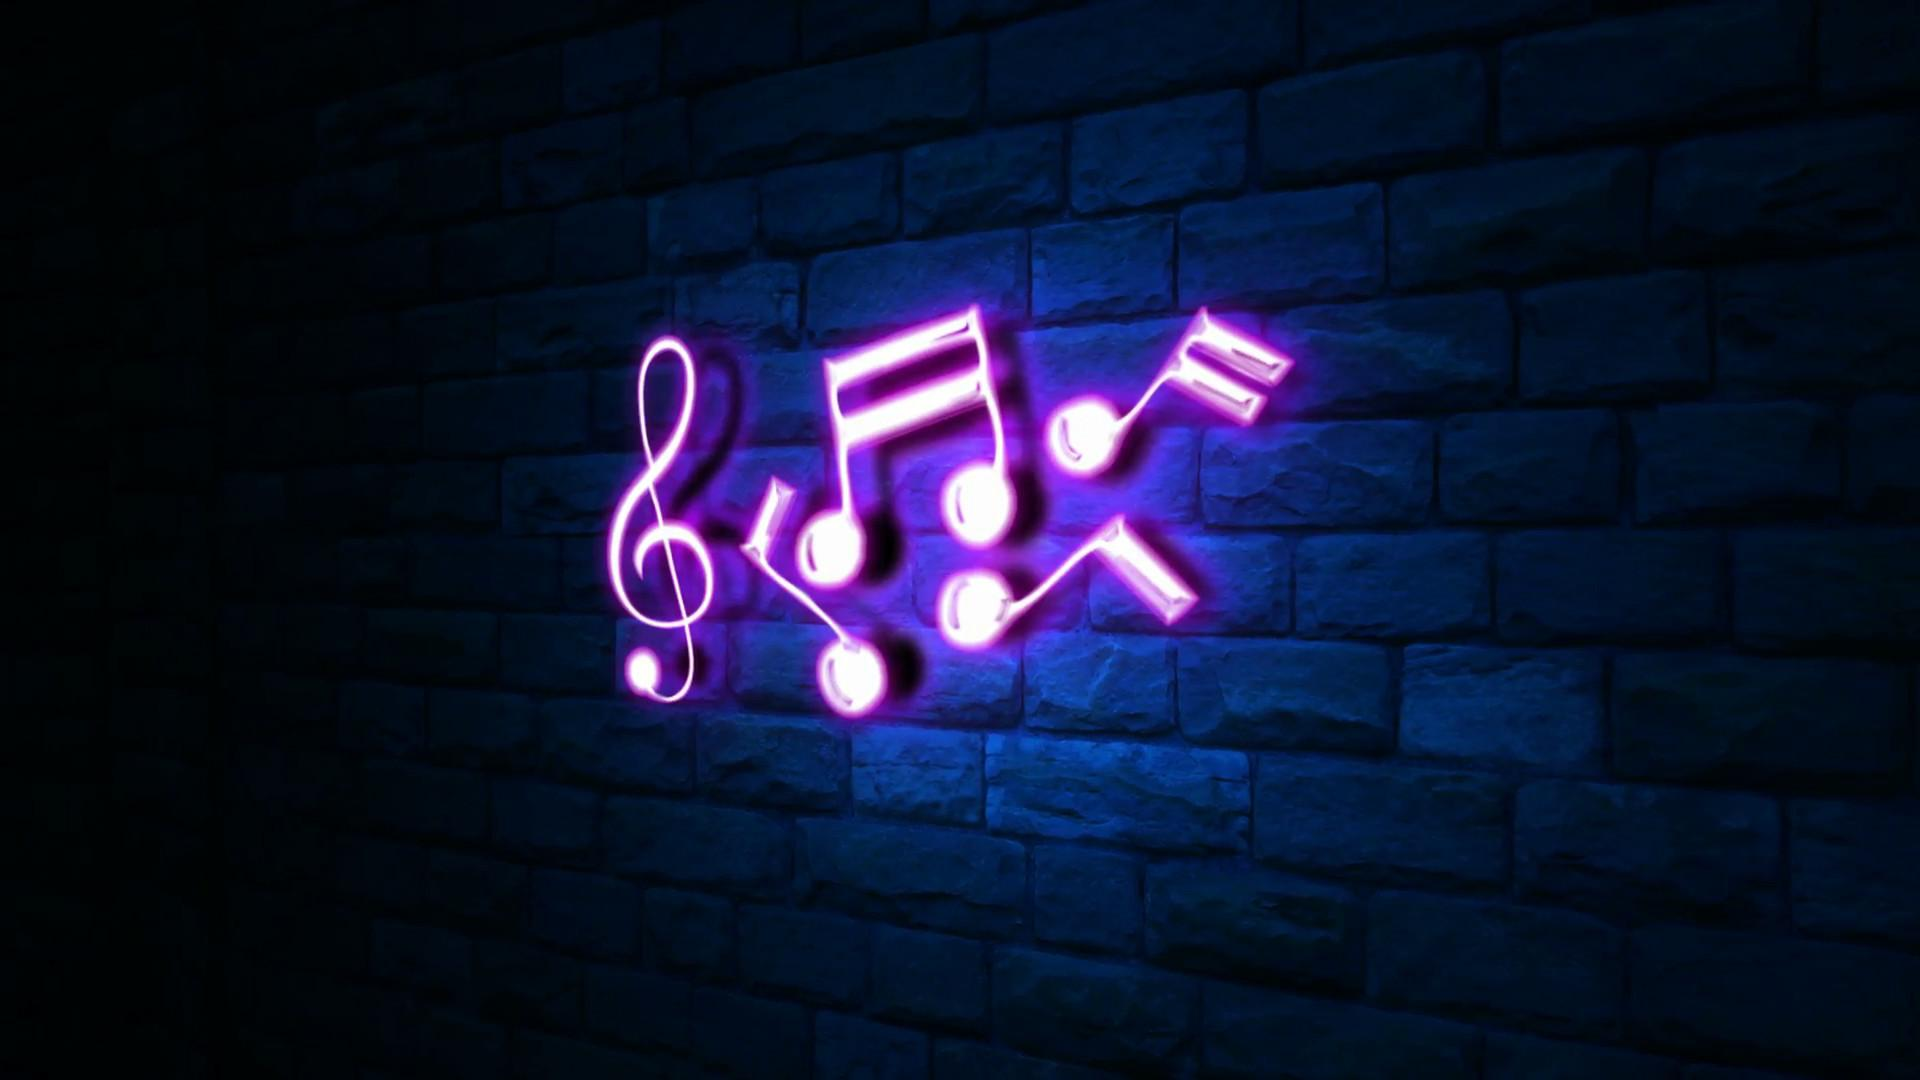 Music Wallpaper – Make Your Computer Stand Out